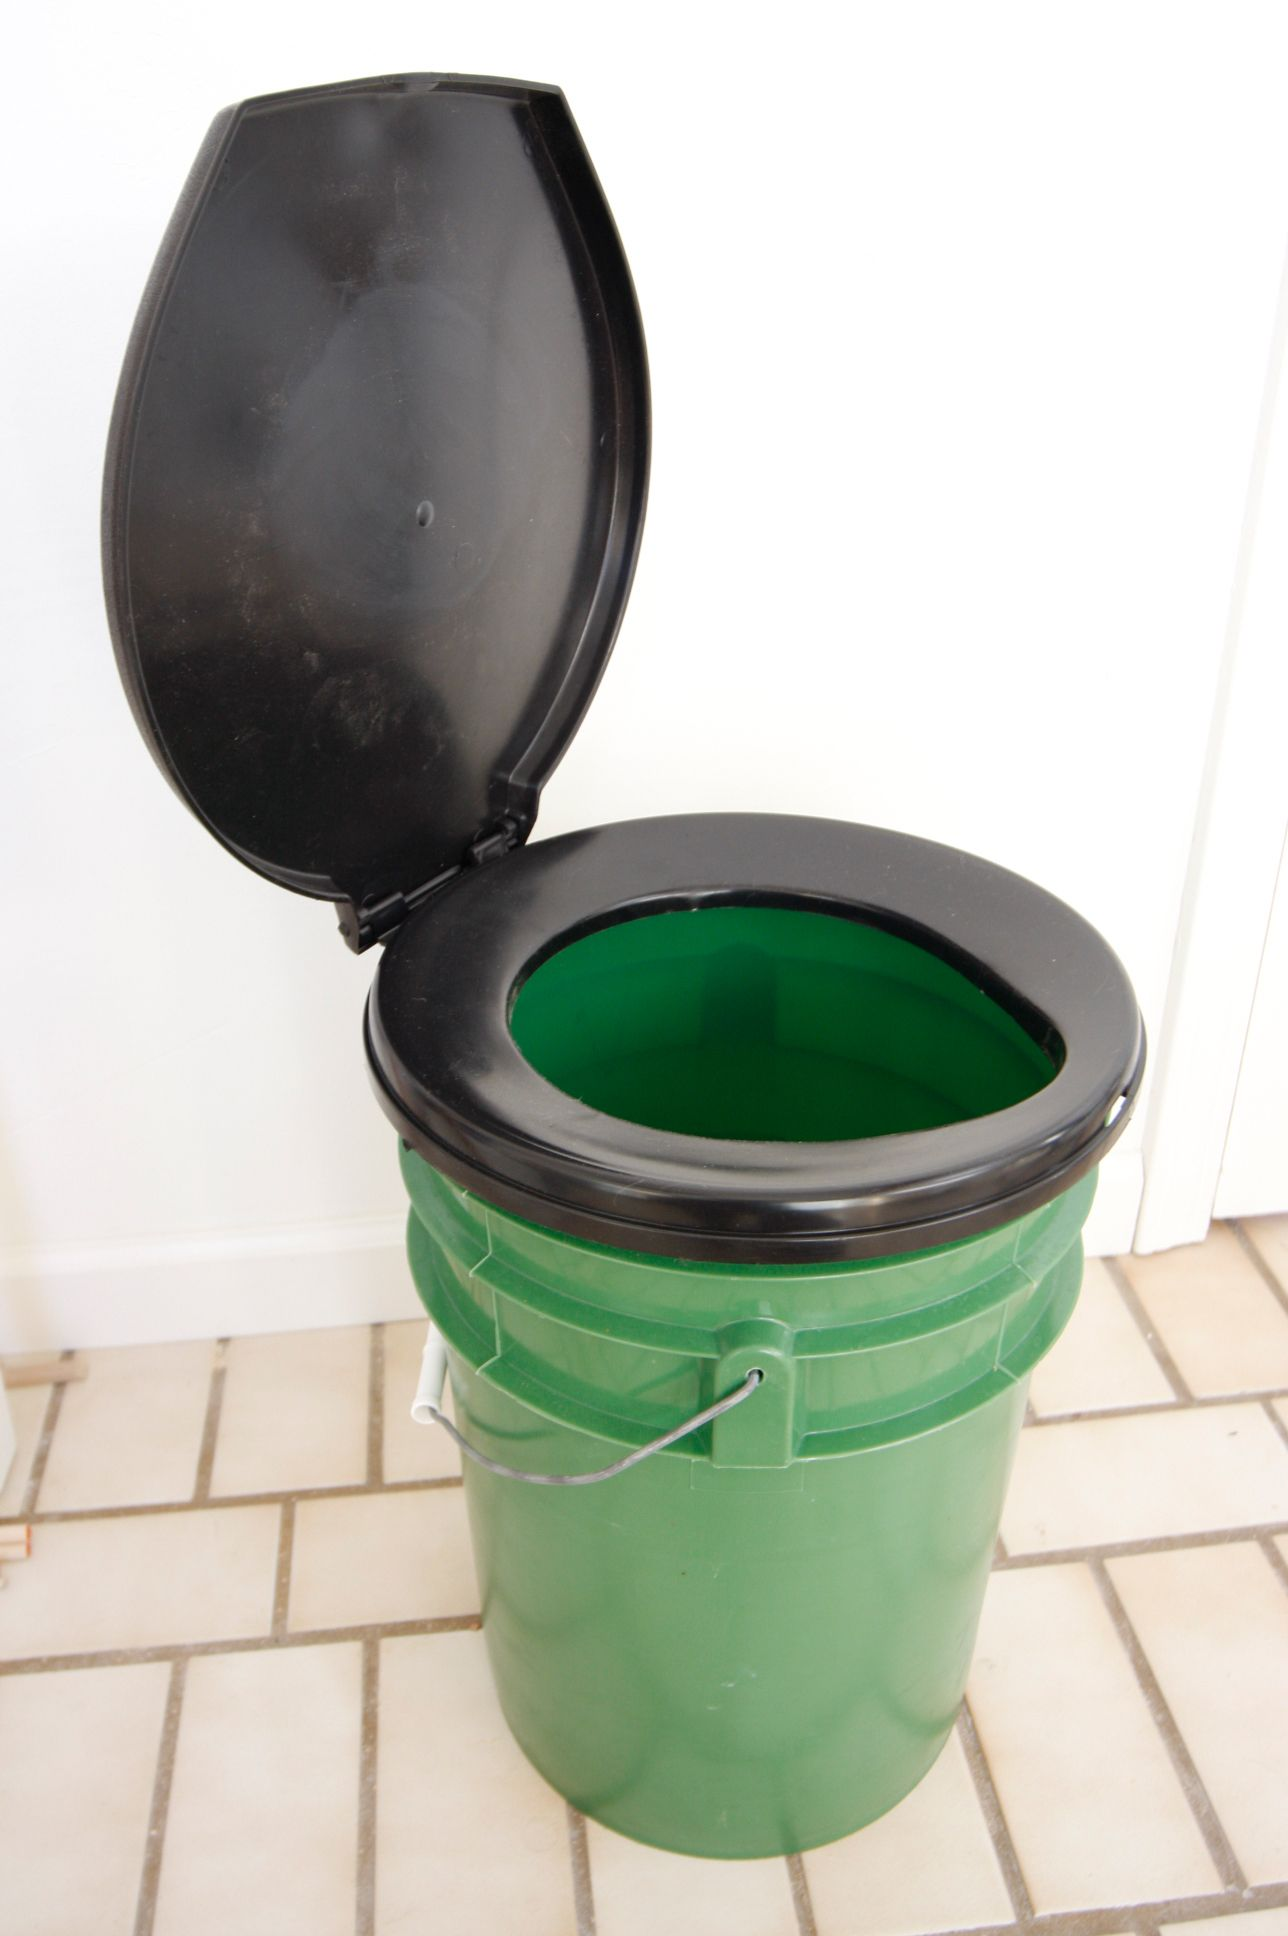 Bucket Toilet Seat for Camping | Survival | Pinterest | Camping ...